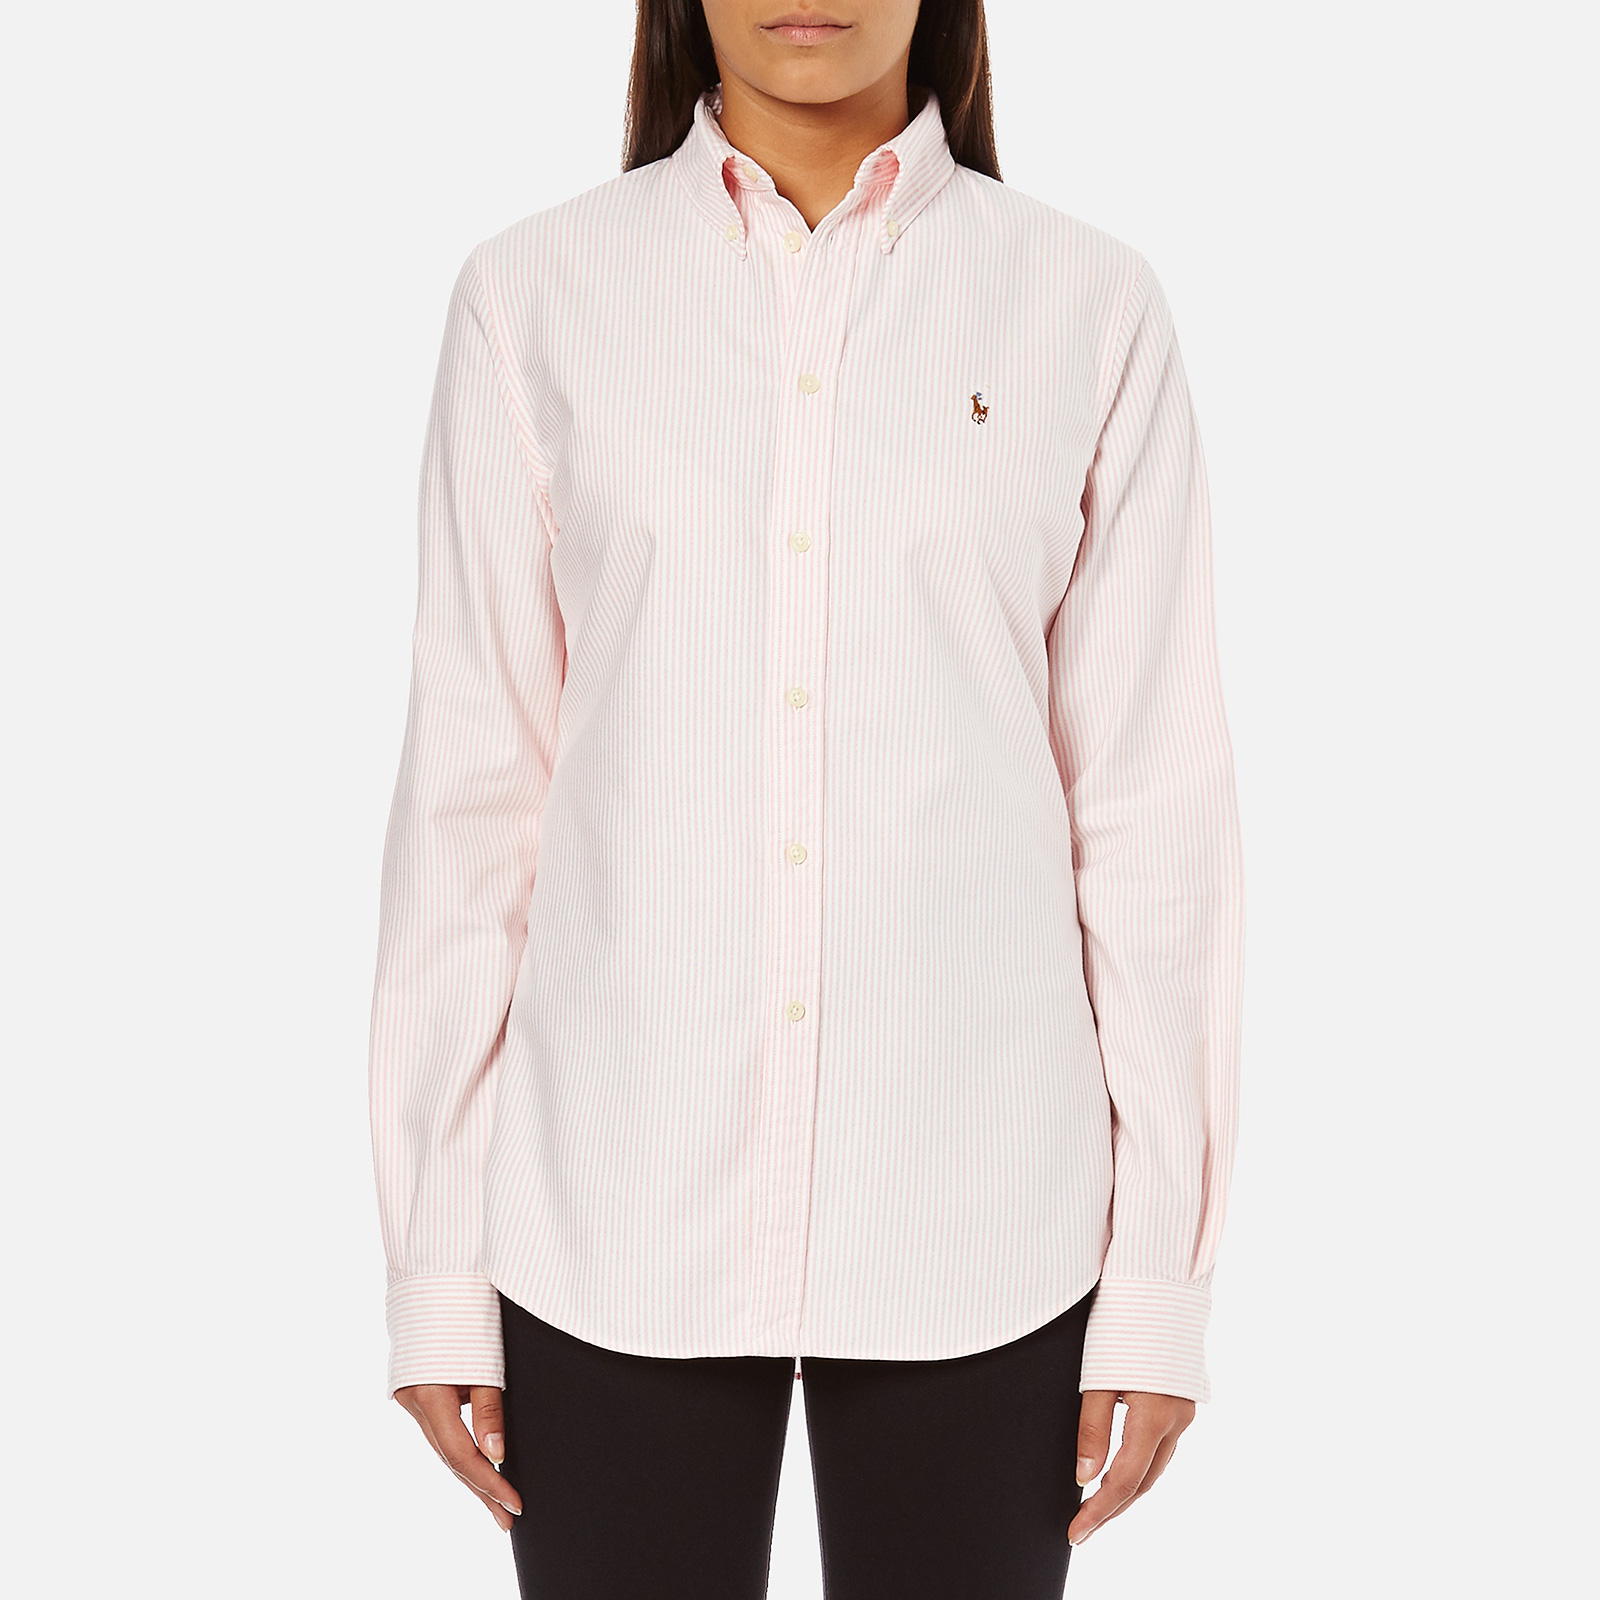 3fa3f49f66c Polo Ralph Lauren Women s Harper Shirt - Pink White - Free UK Delivery over  £50